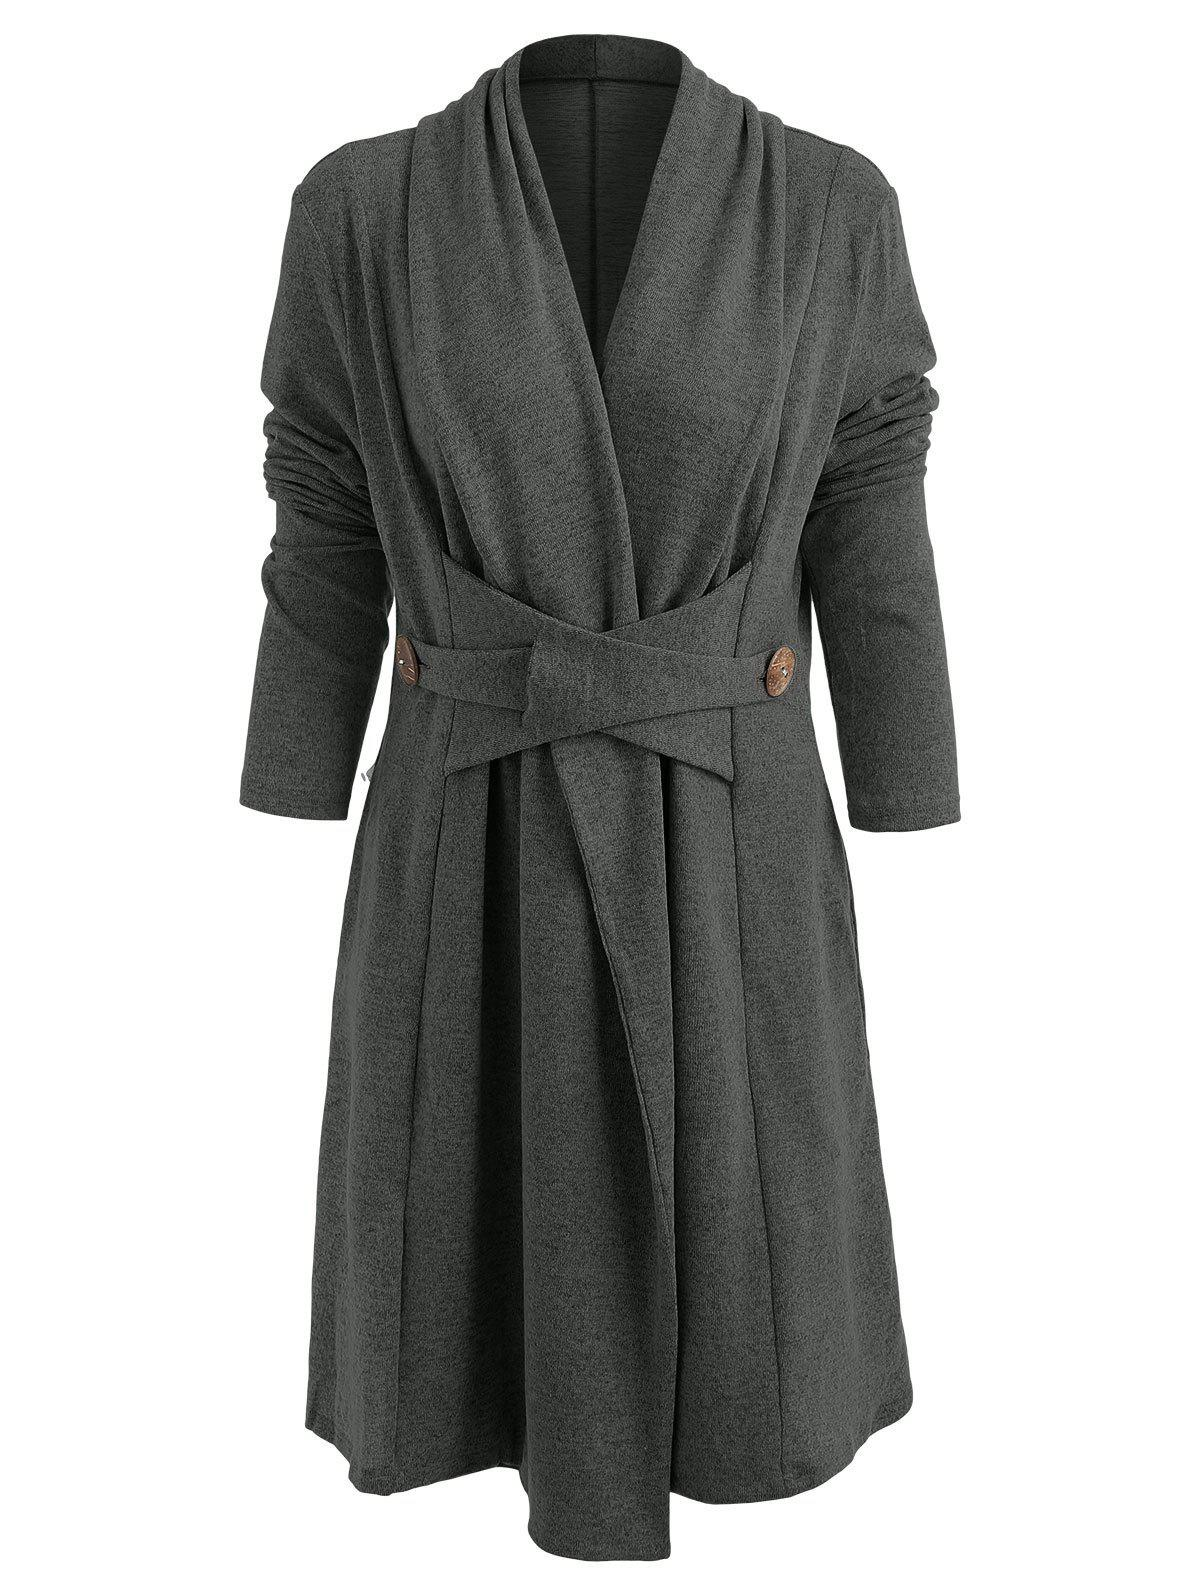 Store Button Long Duster Cardigan